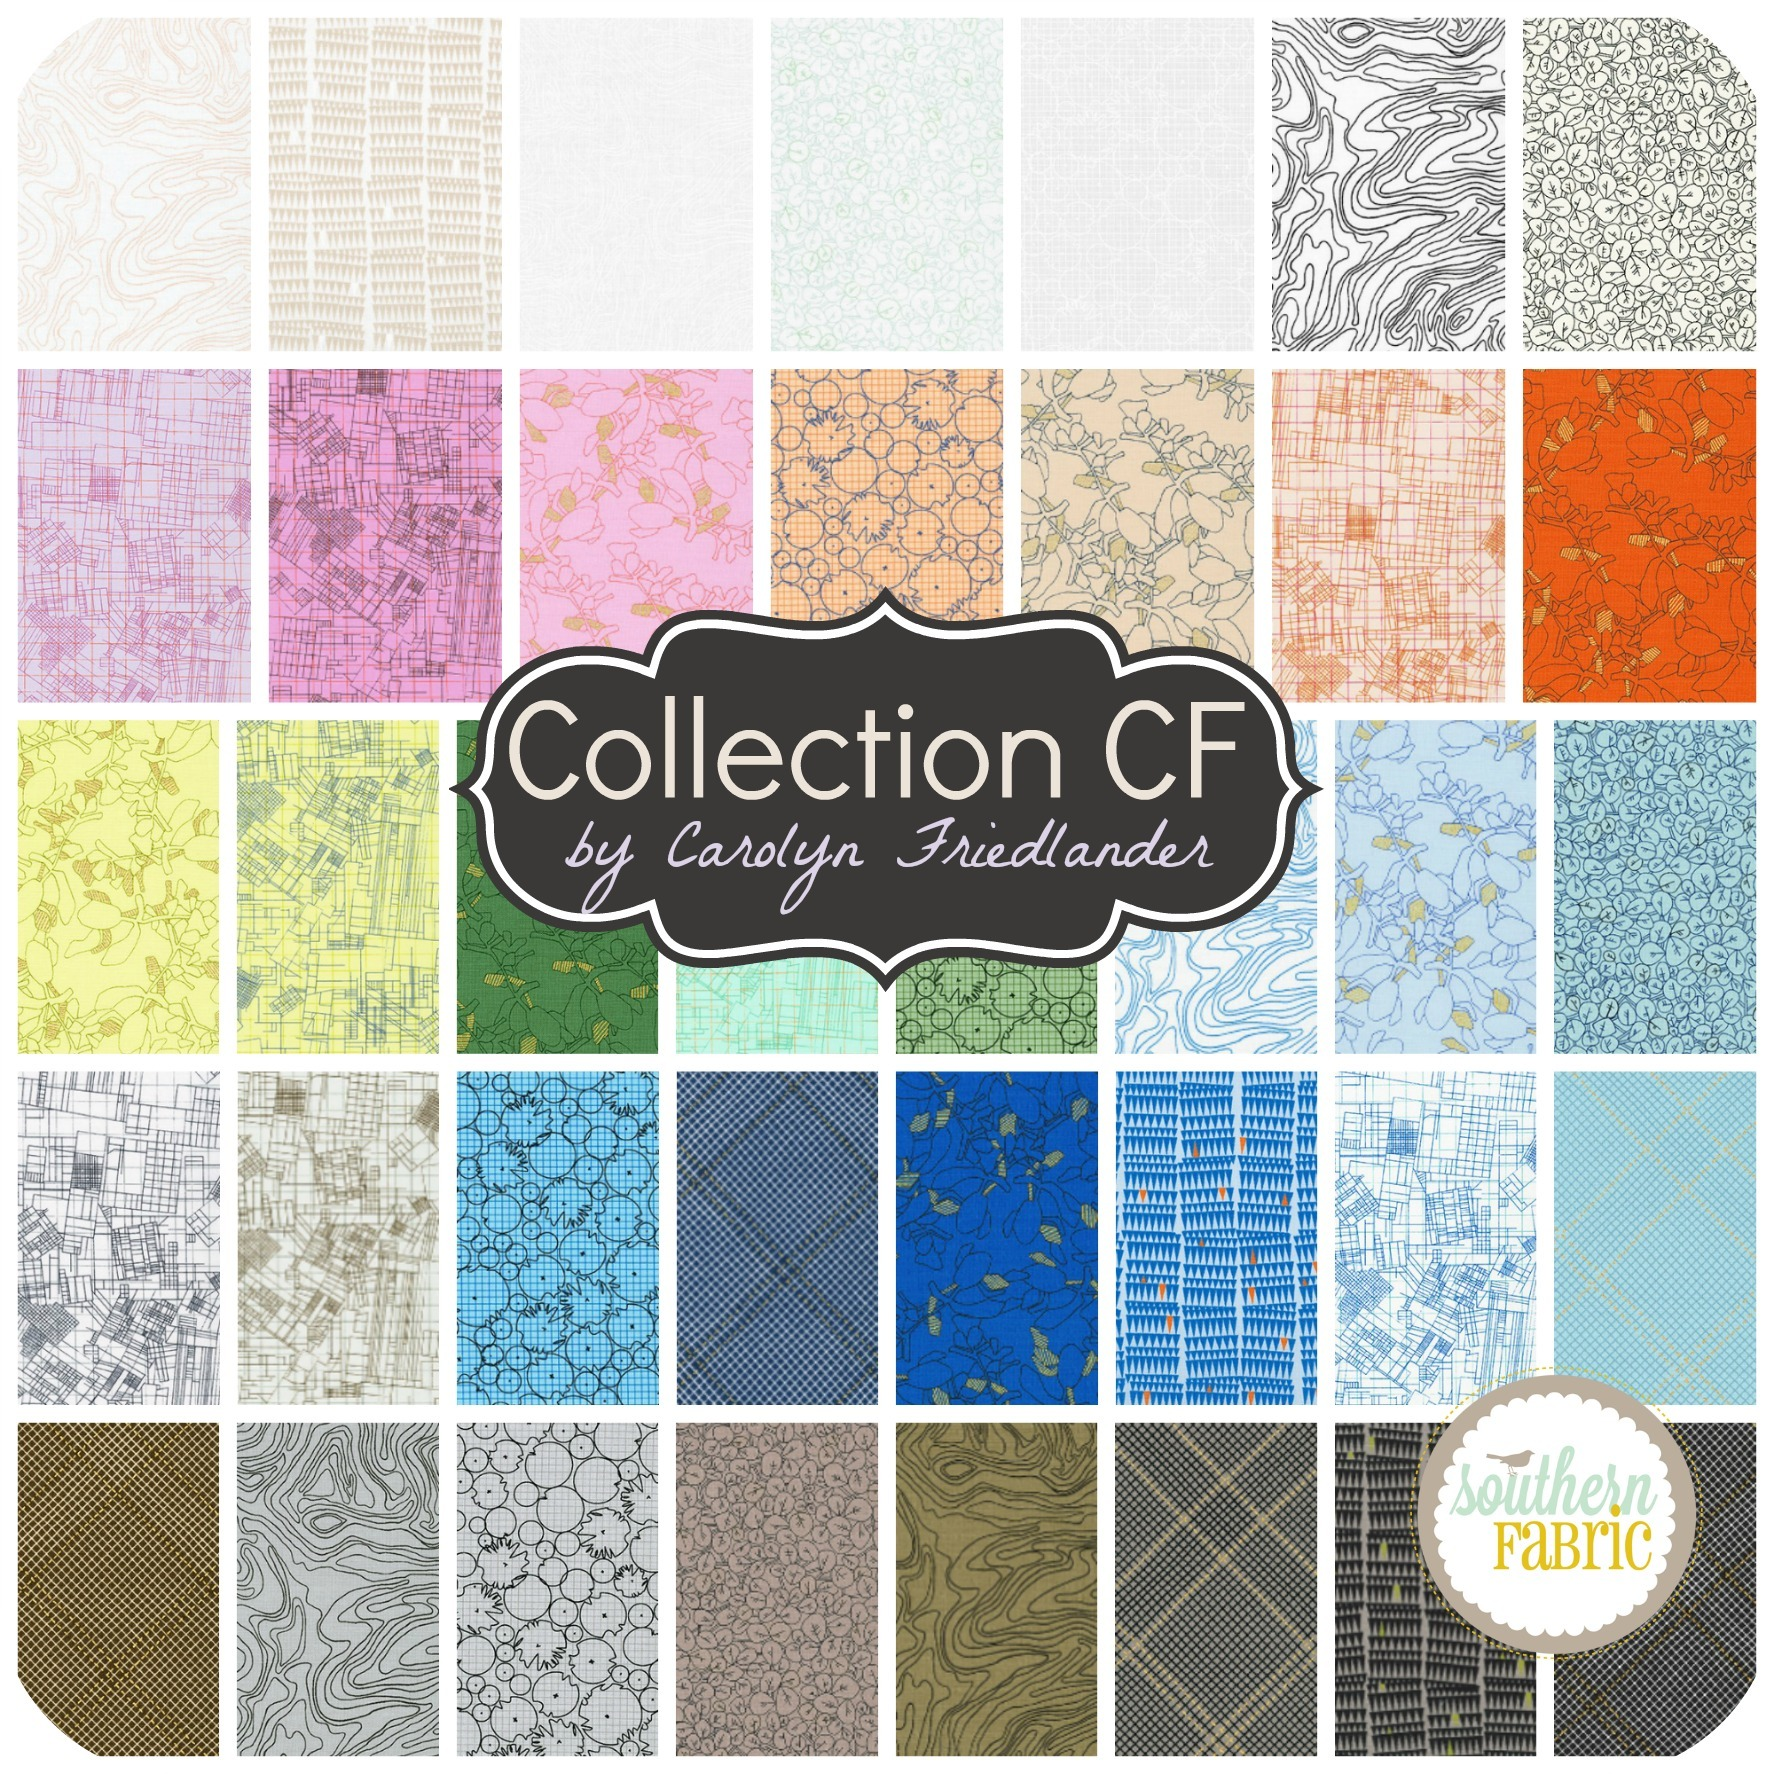 Collection CF by Carolyn Friedlander